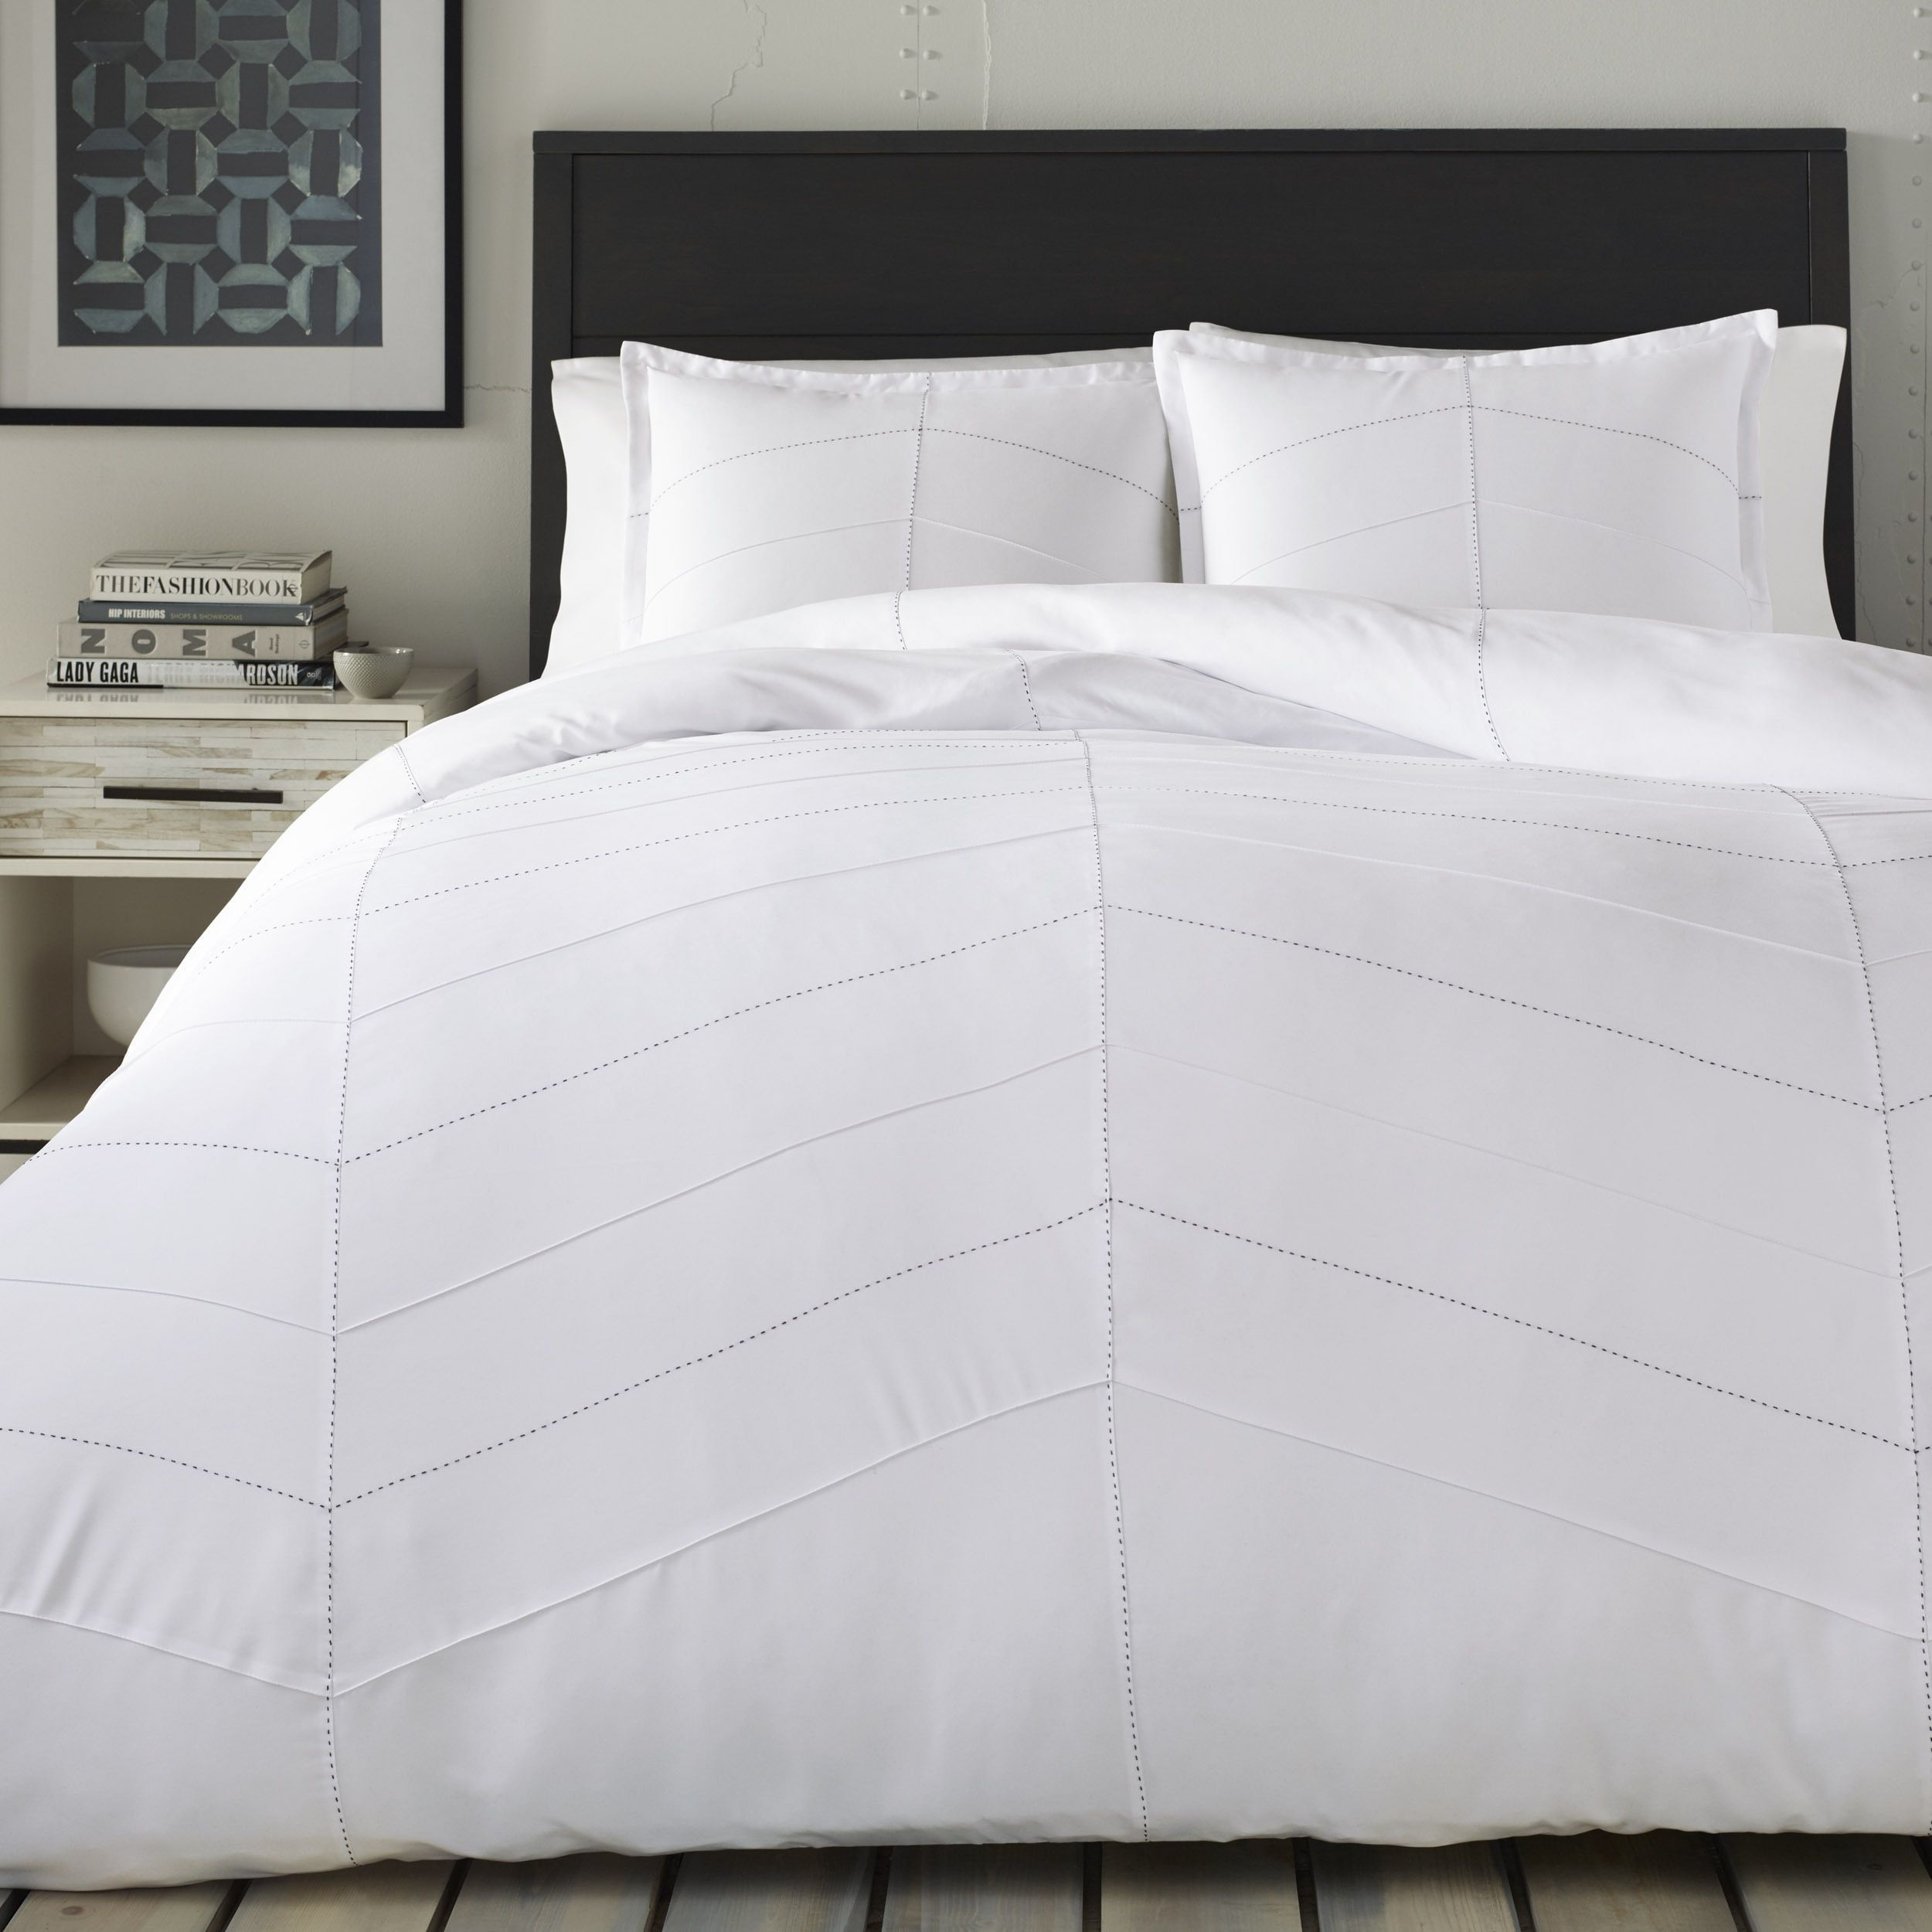 City scene courtney comforter set twin piece white products